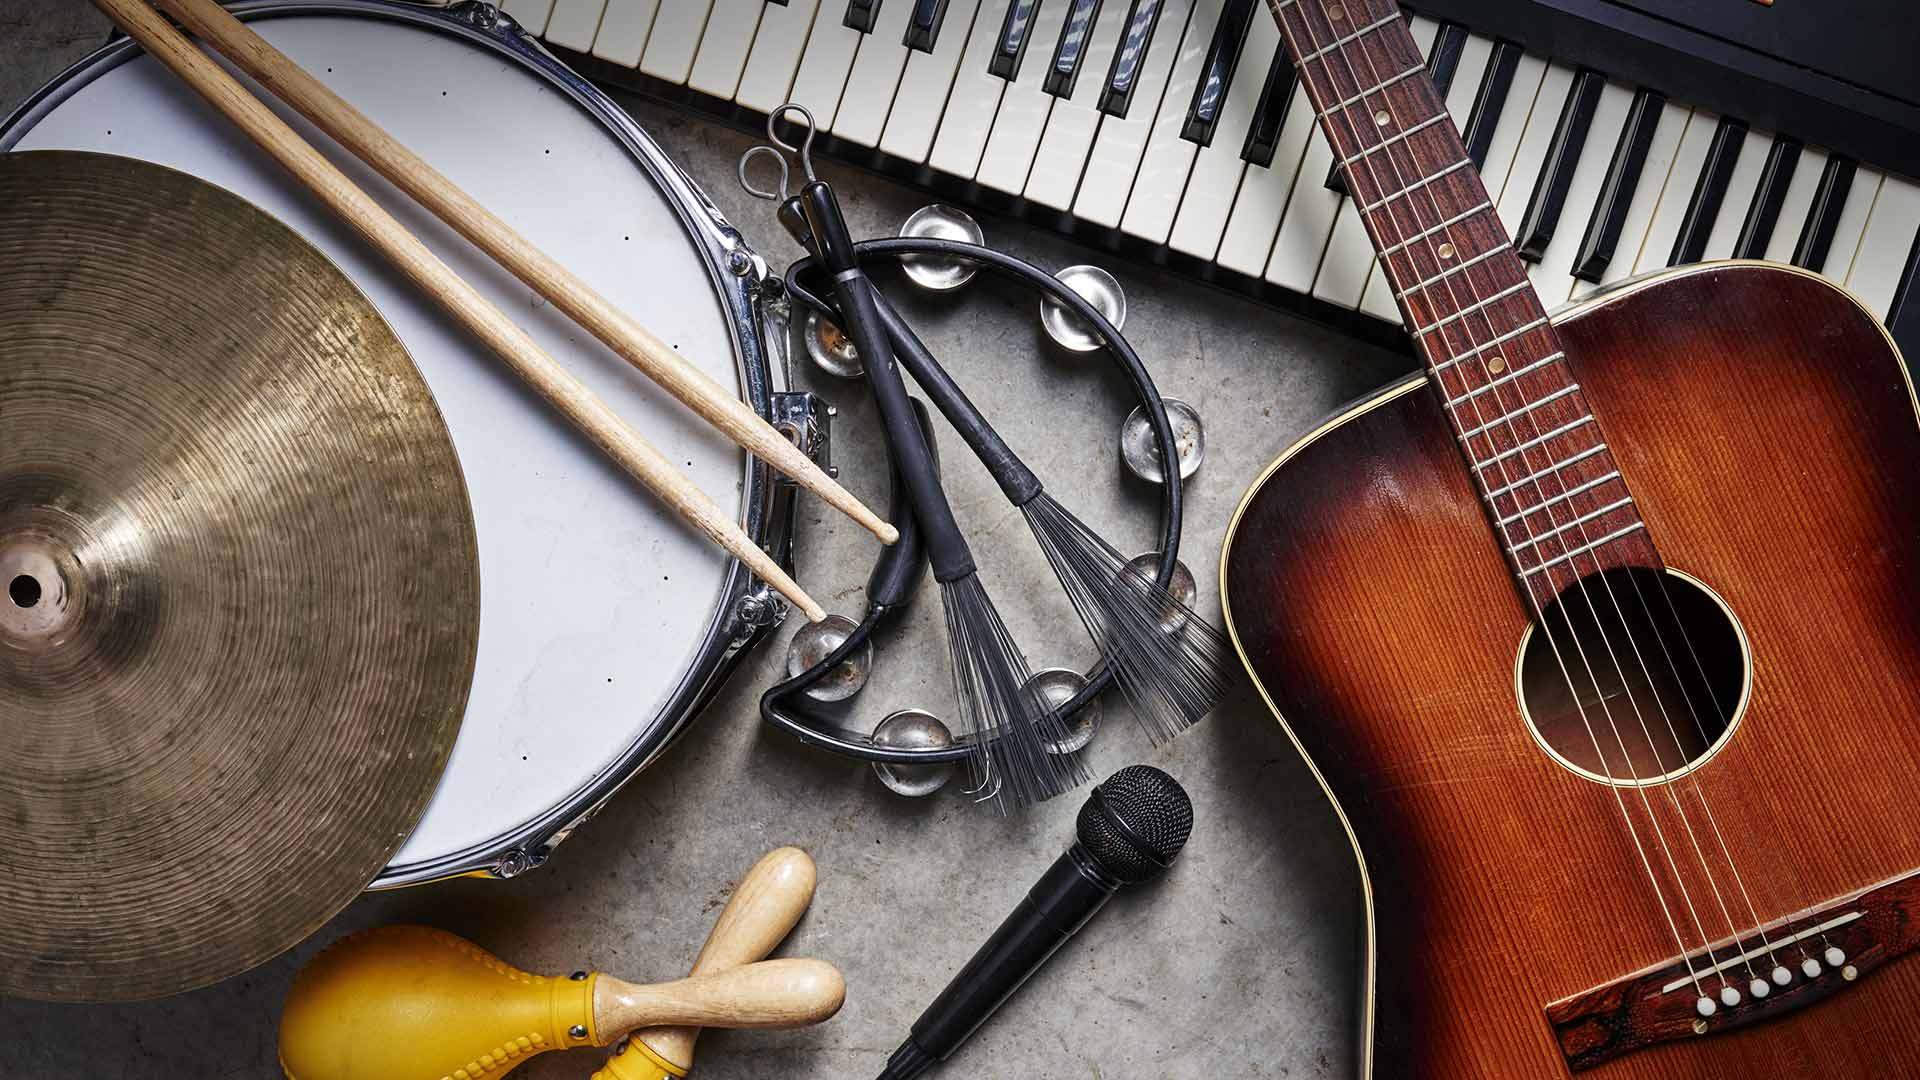 Instruments layed out on a table.